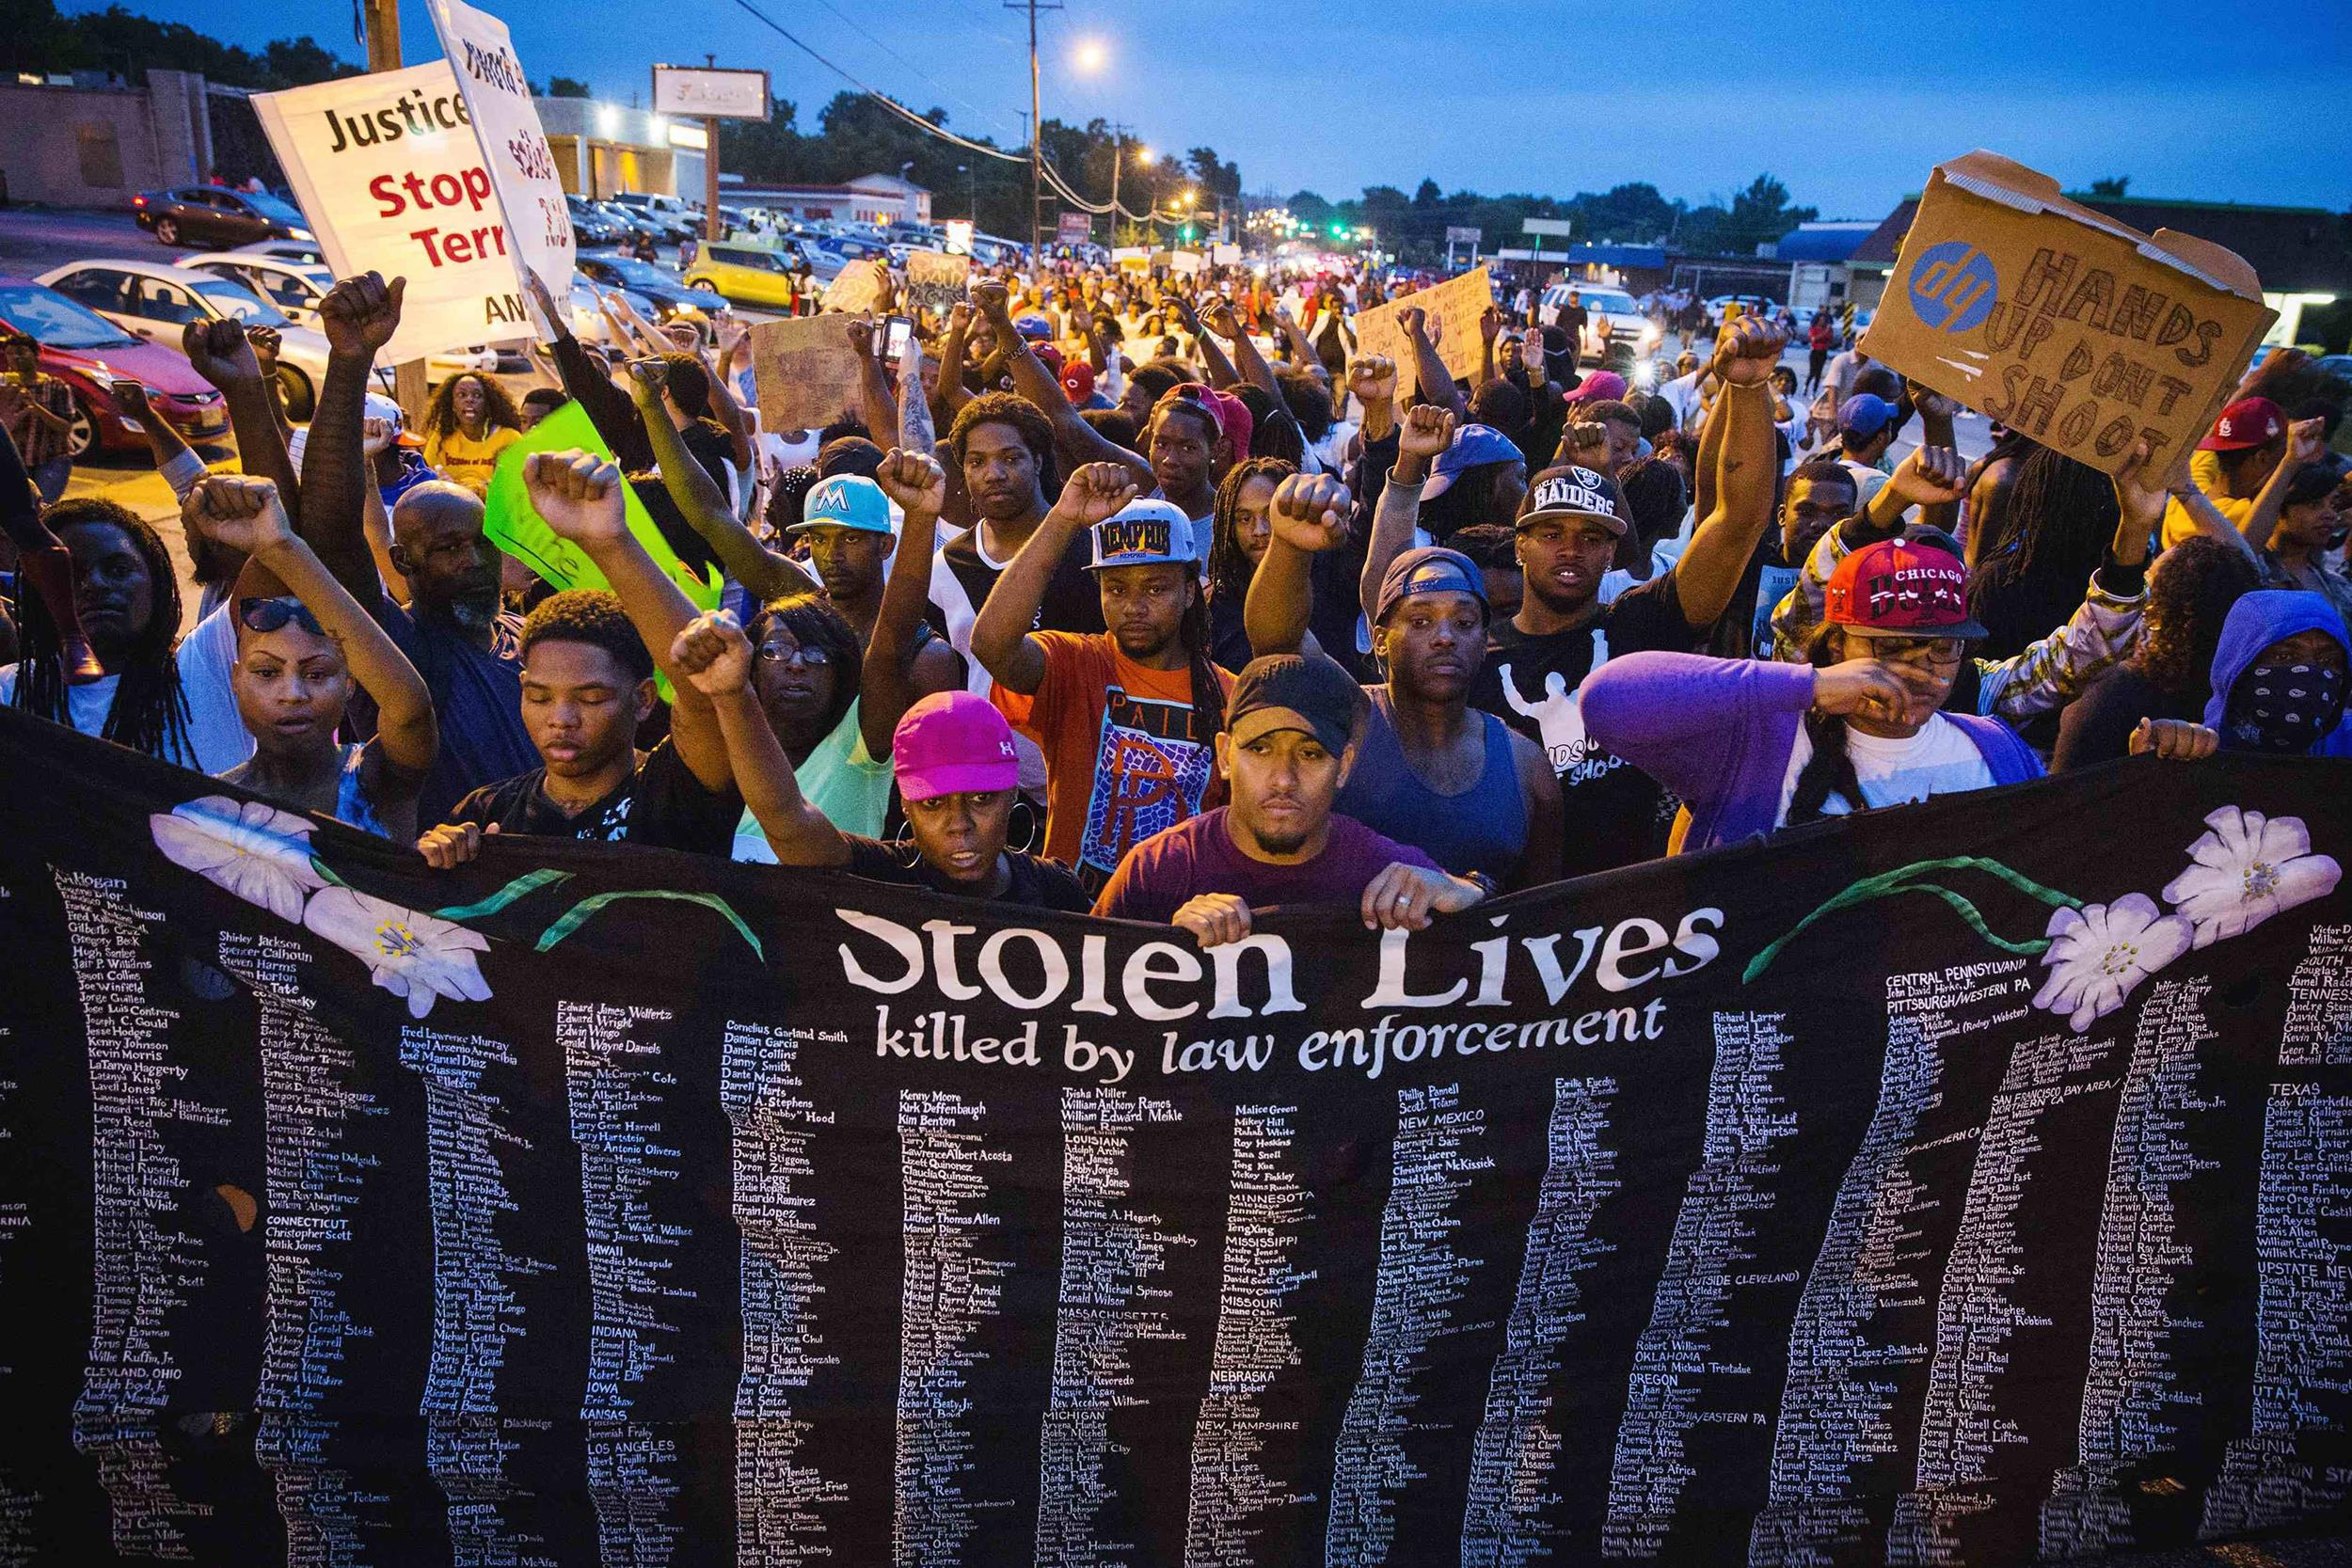 Image: Protestors march and hold their fists aloft as they march during ongoing demonstrations in reaction to the shooting of Michael Brown in Ferguson, Missouri